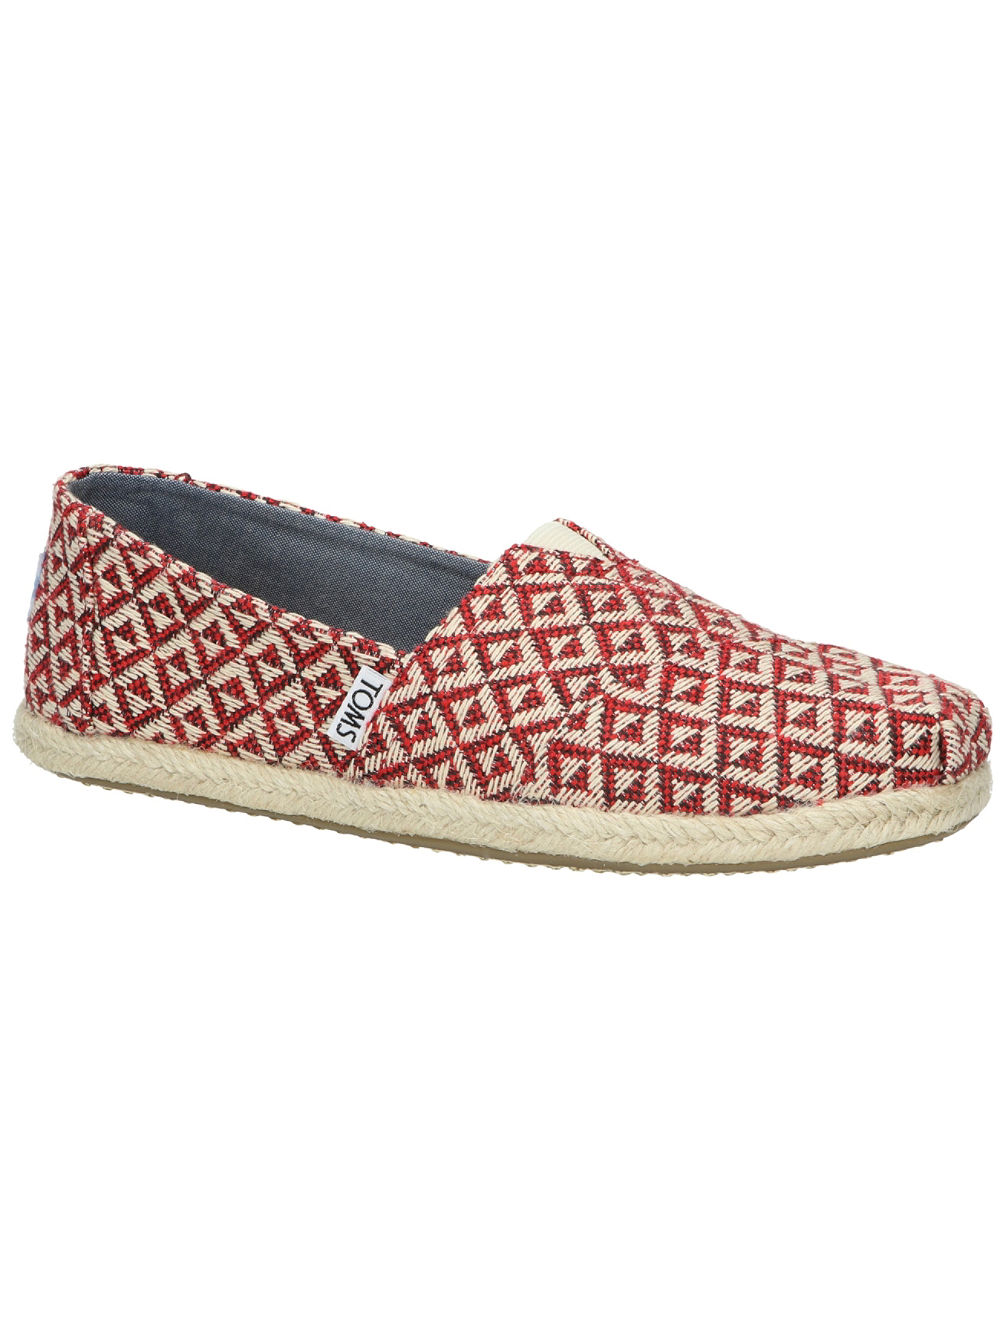 Seasonal Classics Slippers Women